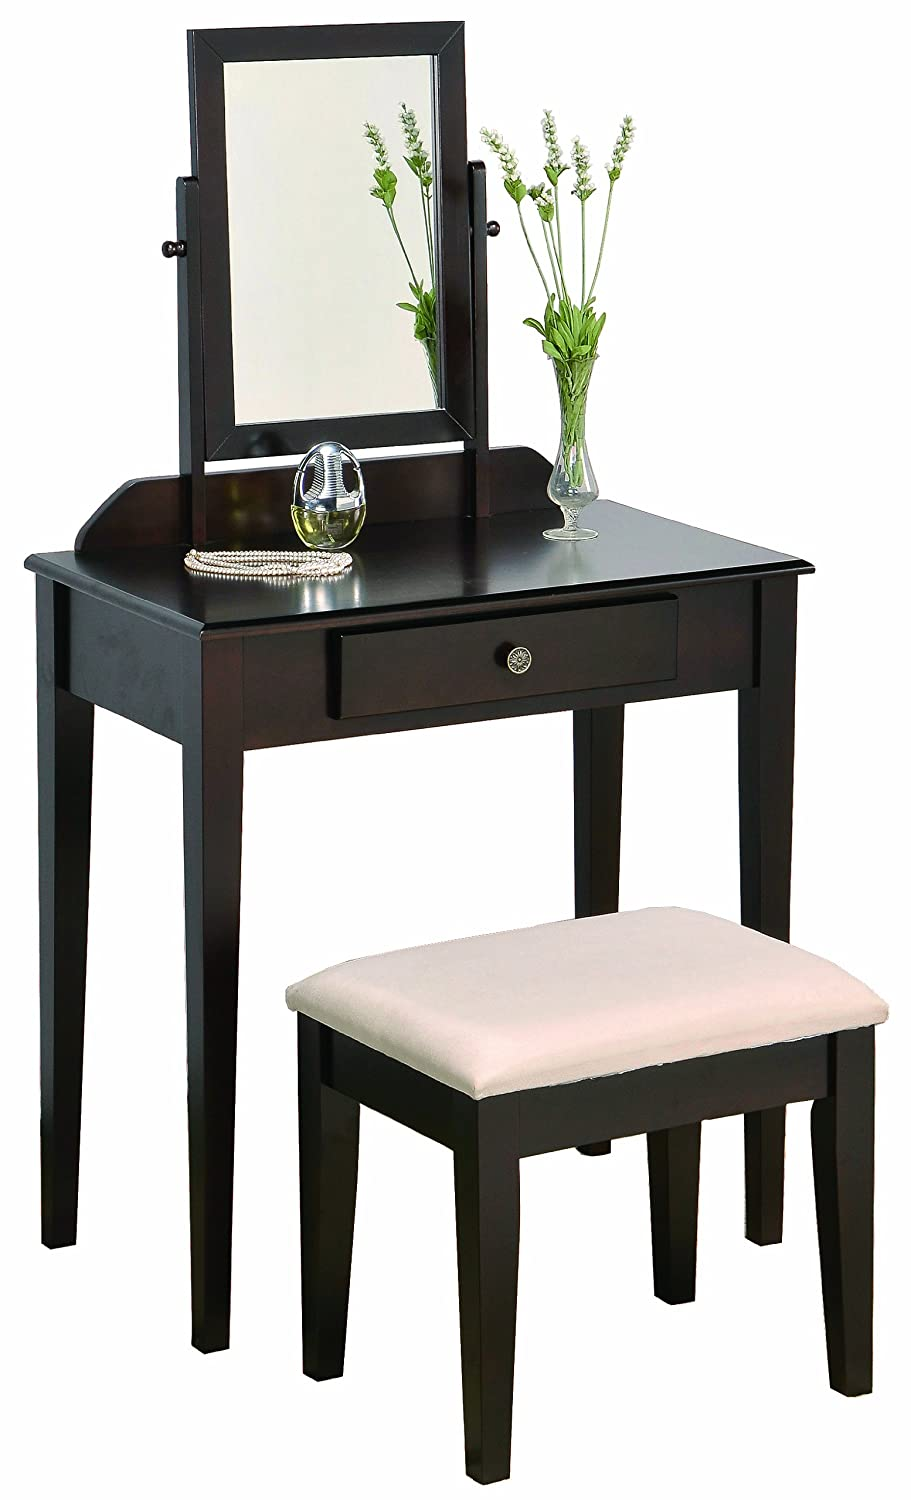 Elegant Amazon.com: Crown Mark Iris Vanity Table/Stool, Espresso Finish With Beige  Seat: Kitchen U0026 Dining